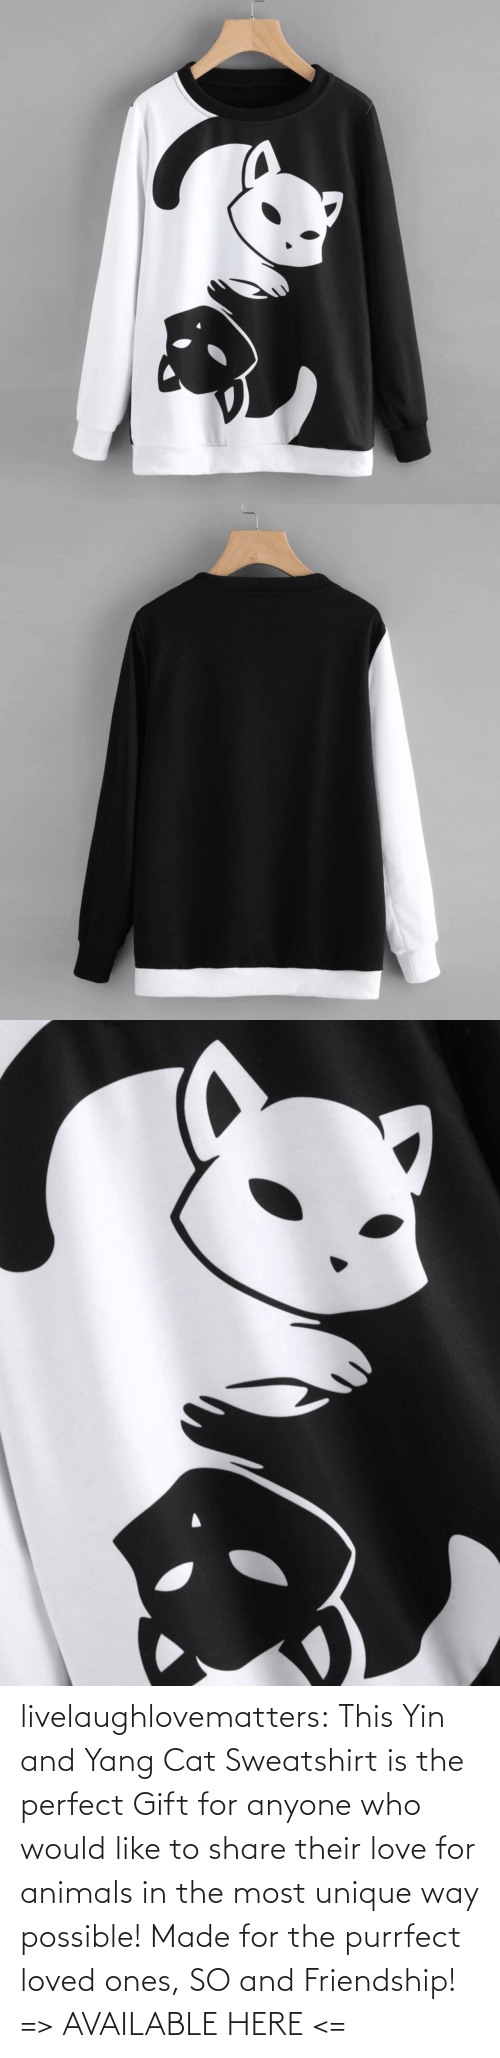 Perfect Gift: livelaughlovematters: This Yin and Yang Cat Sweatshirt is the perfect Gift for anyone who would like to share their love for animals in the most unique way possible! Made for the purrfect loved ones, SO and Friendship!  => AVAILABLE HERE <=